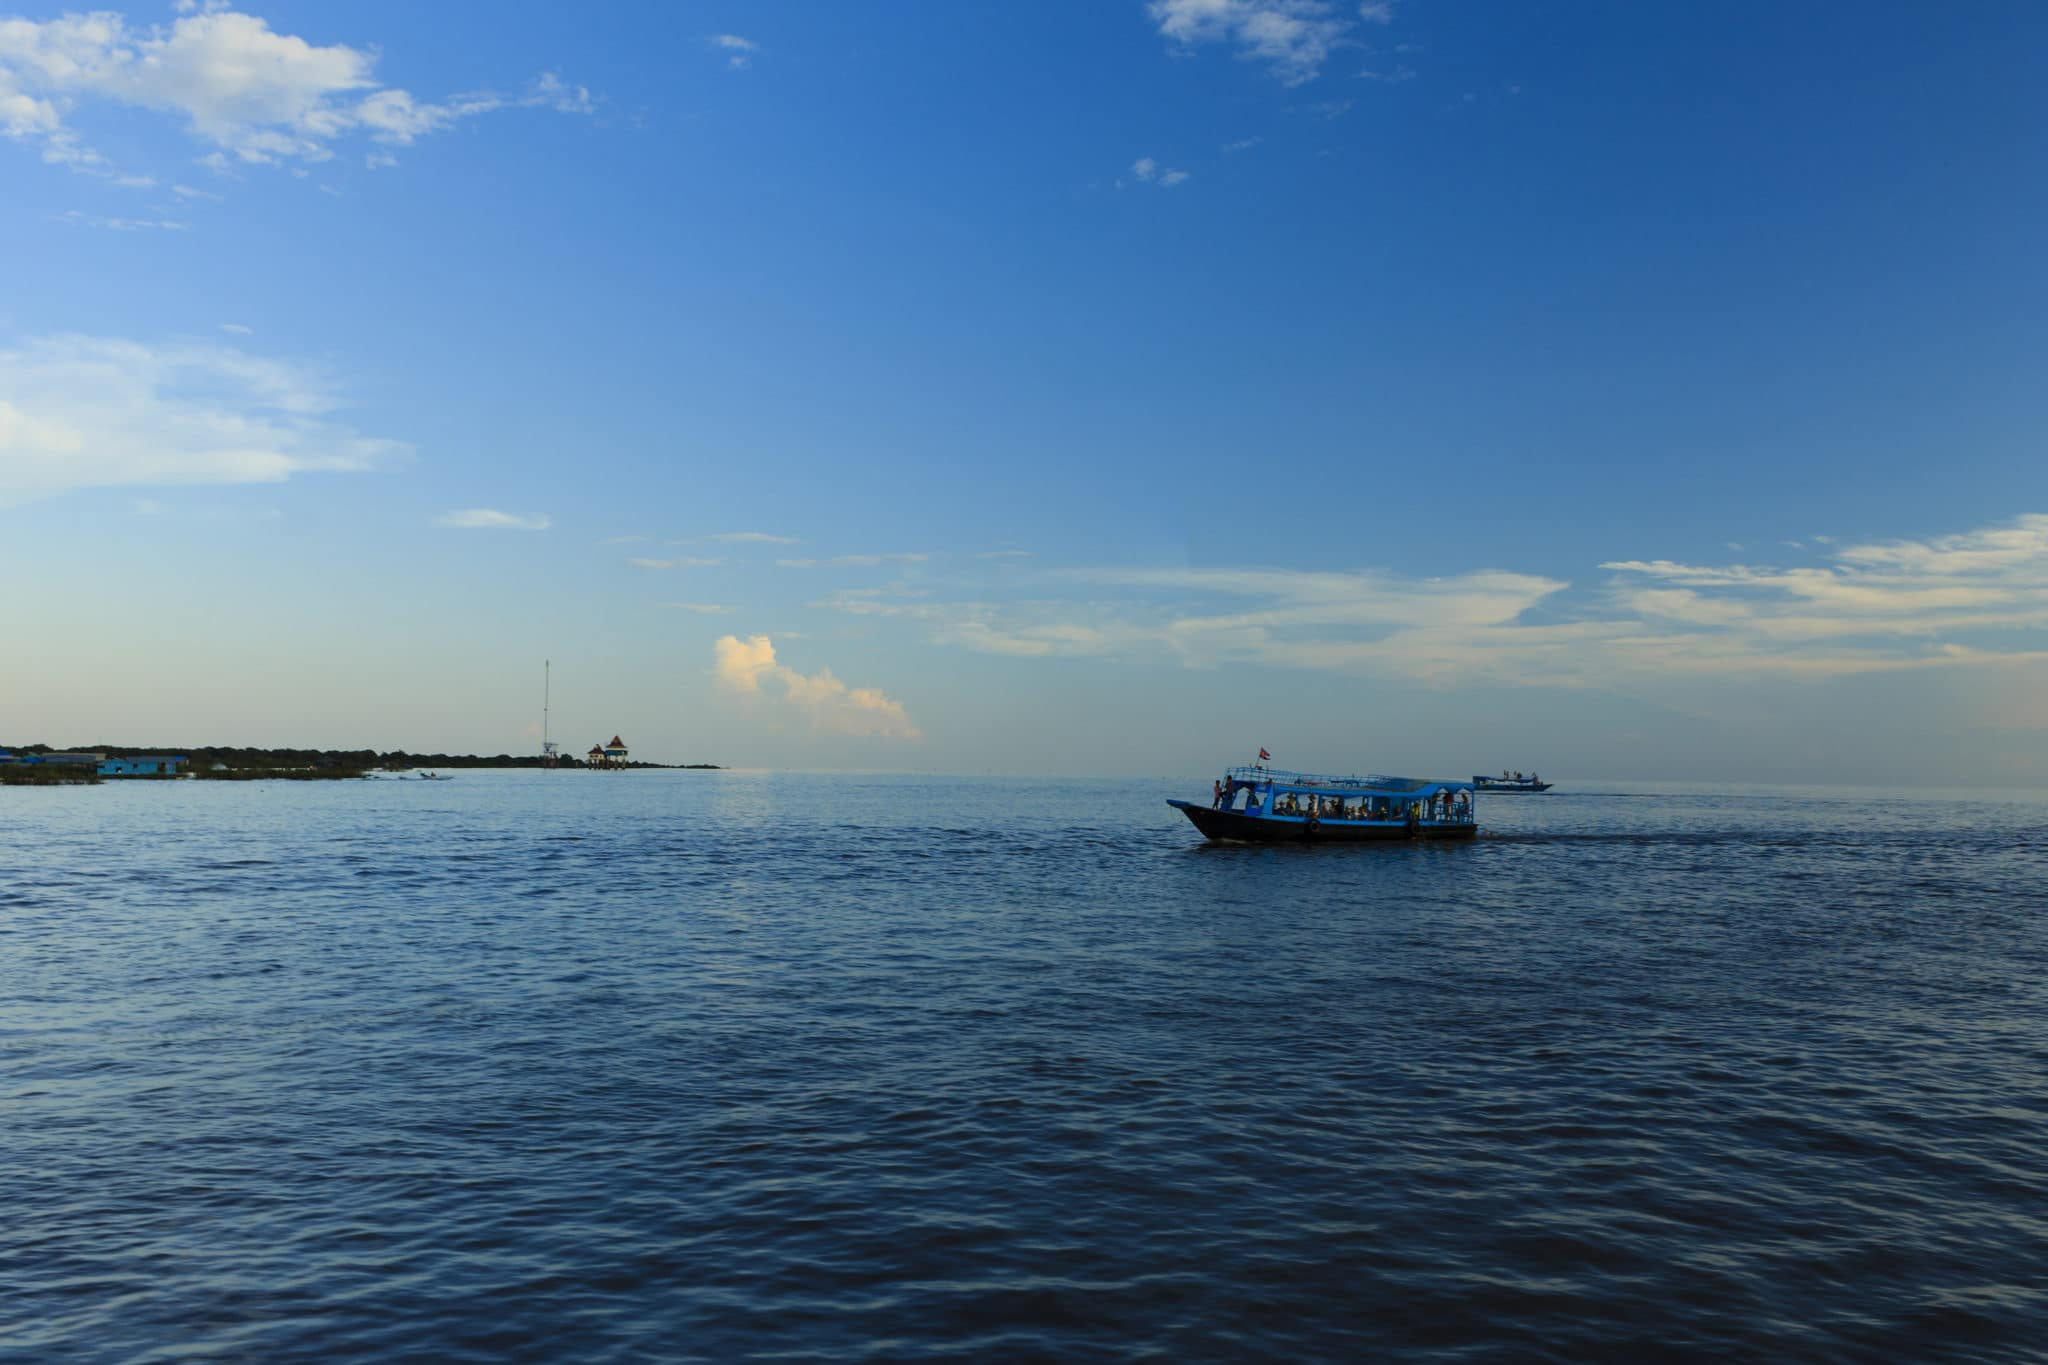 A Boat on the Tonle Sap Lake.